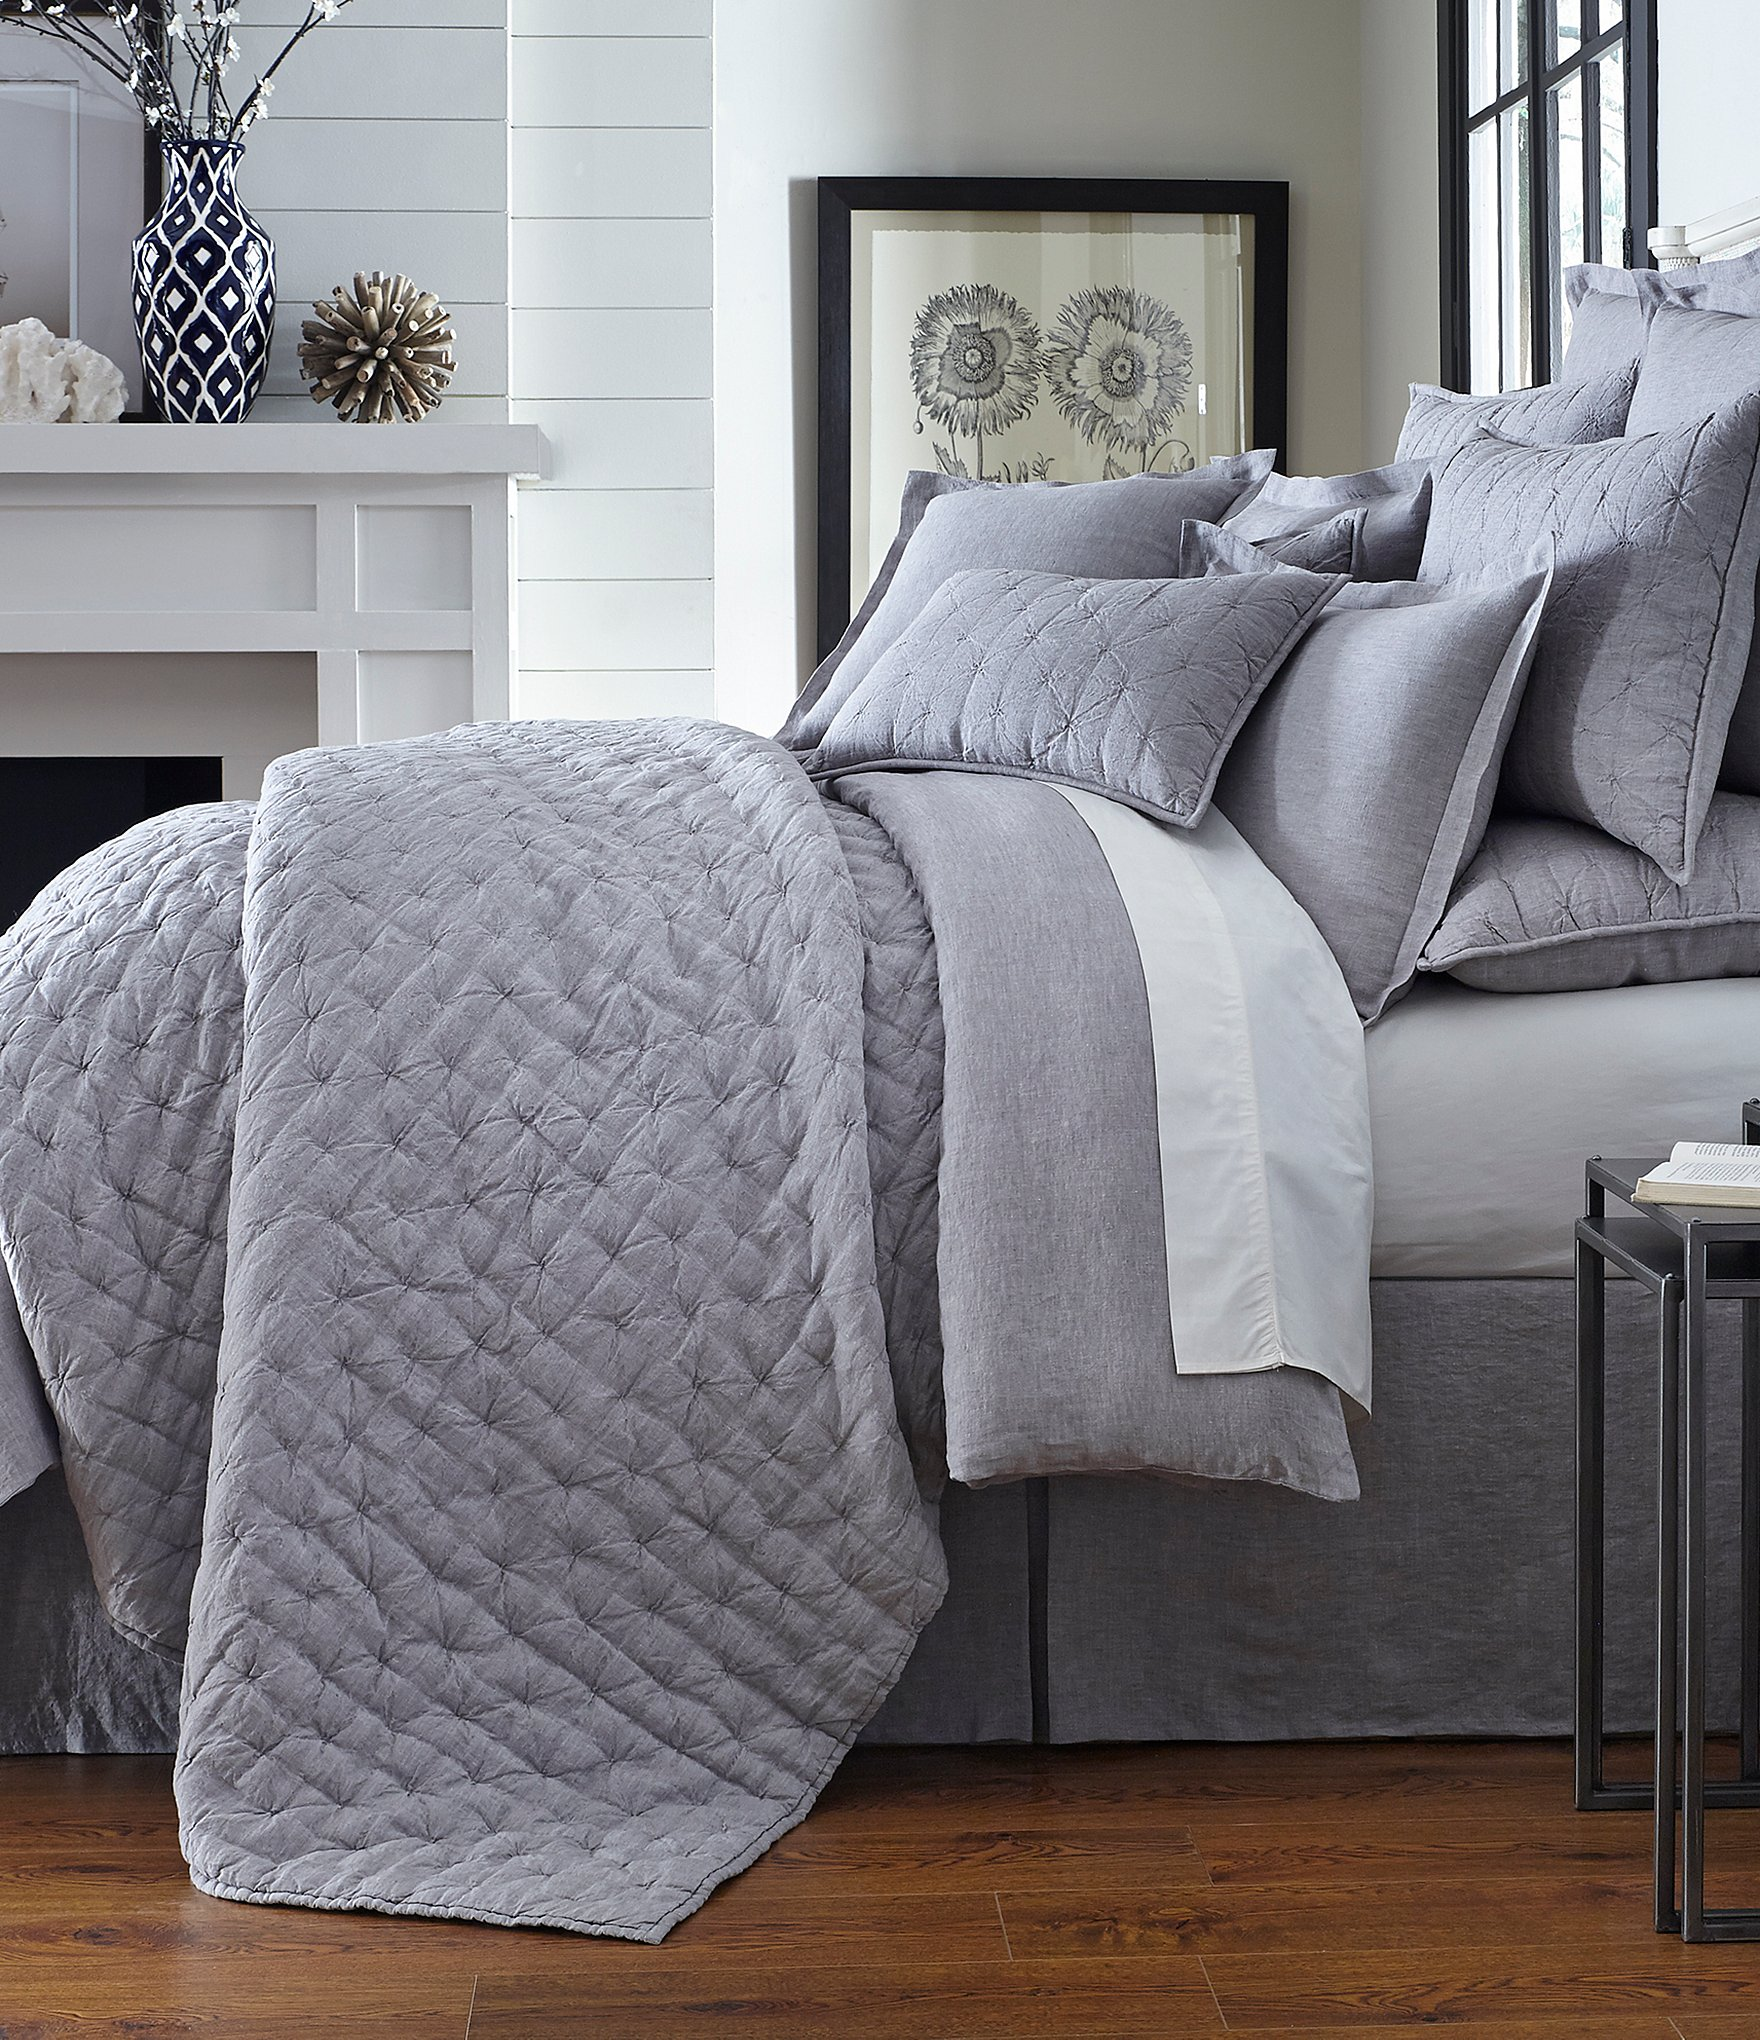 home  bedding  dillardscom -